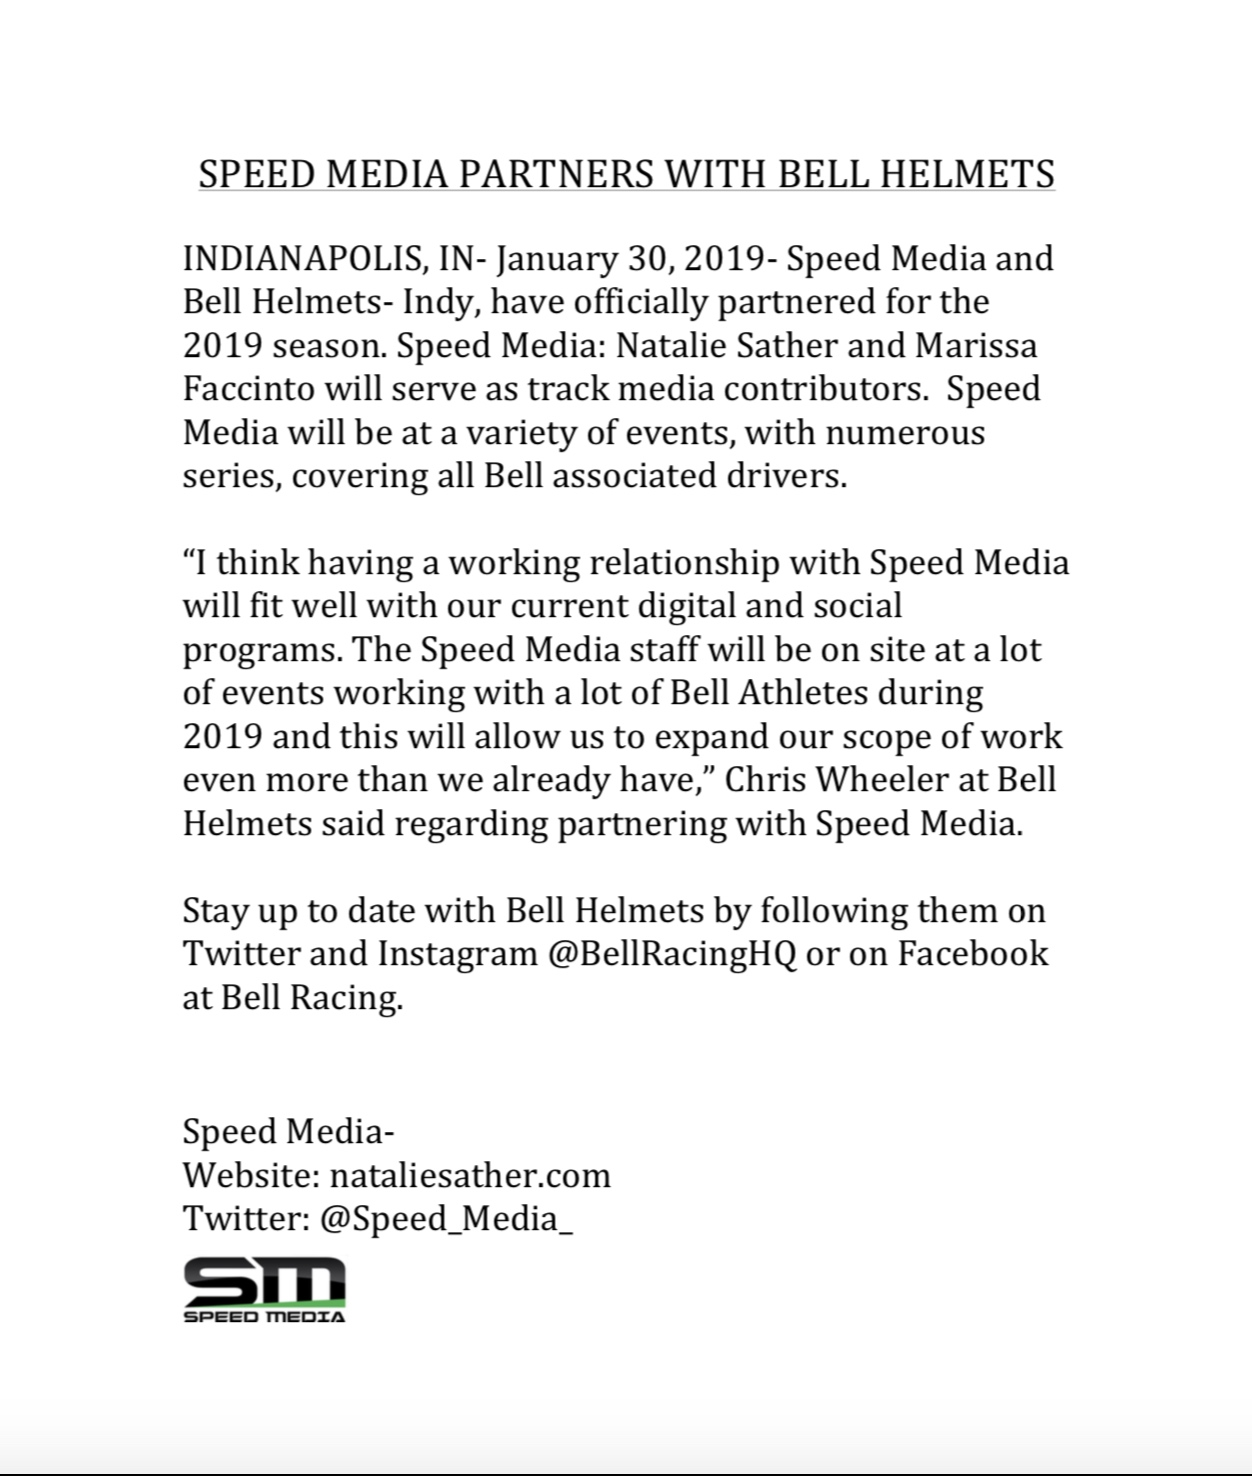 SPEED MEDIA PARTNERS WITH BELL HELMETS